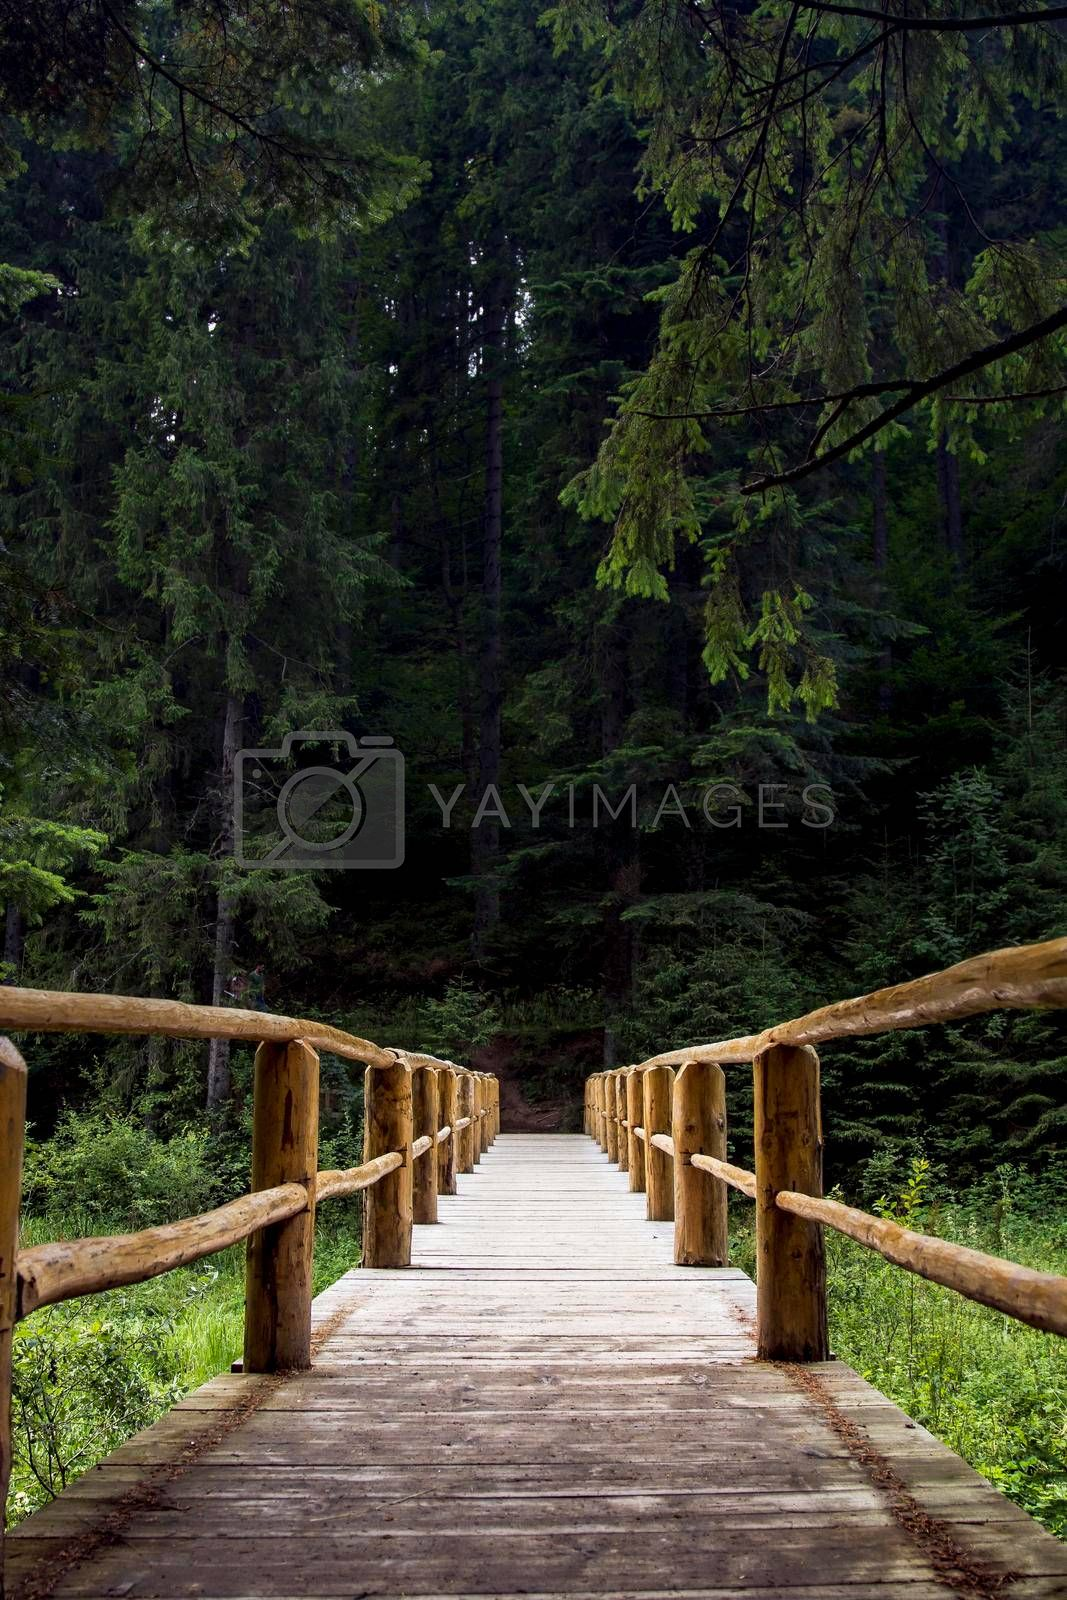 Royalty free image of Wooden bridge over the river. Green and dense forest at the end of the bridge. by Jannetta